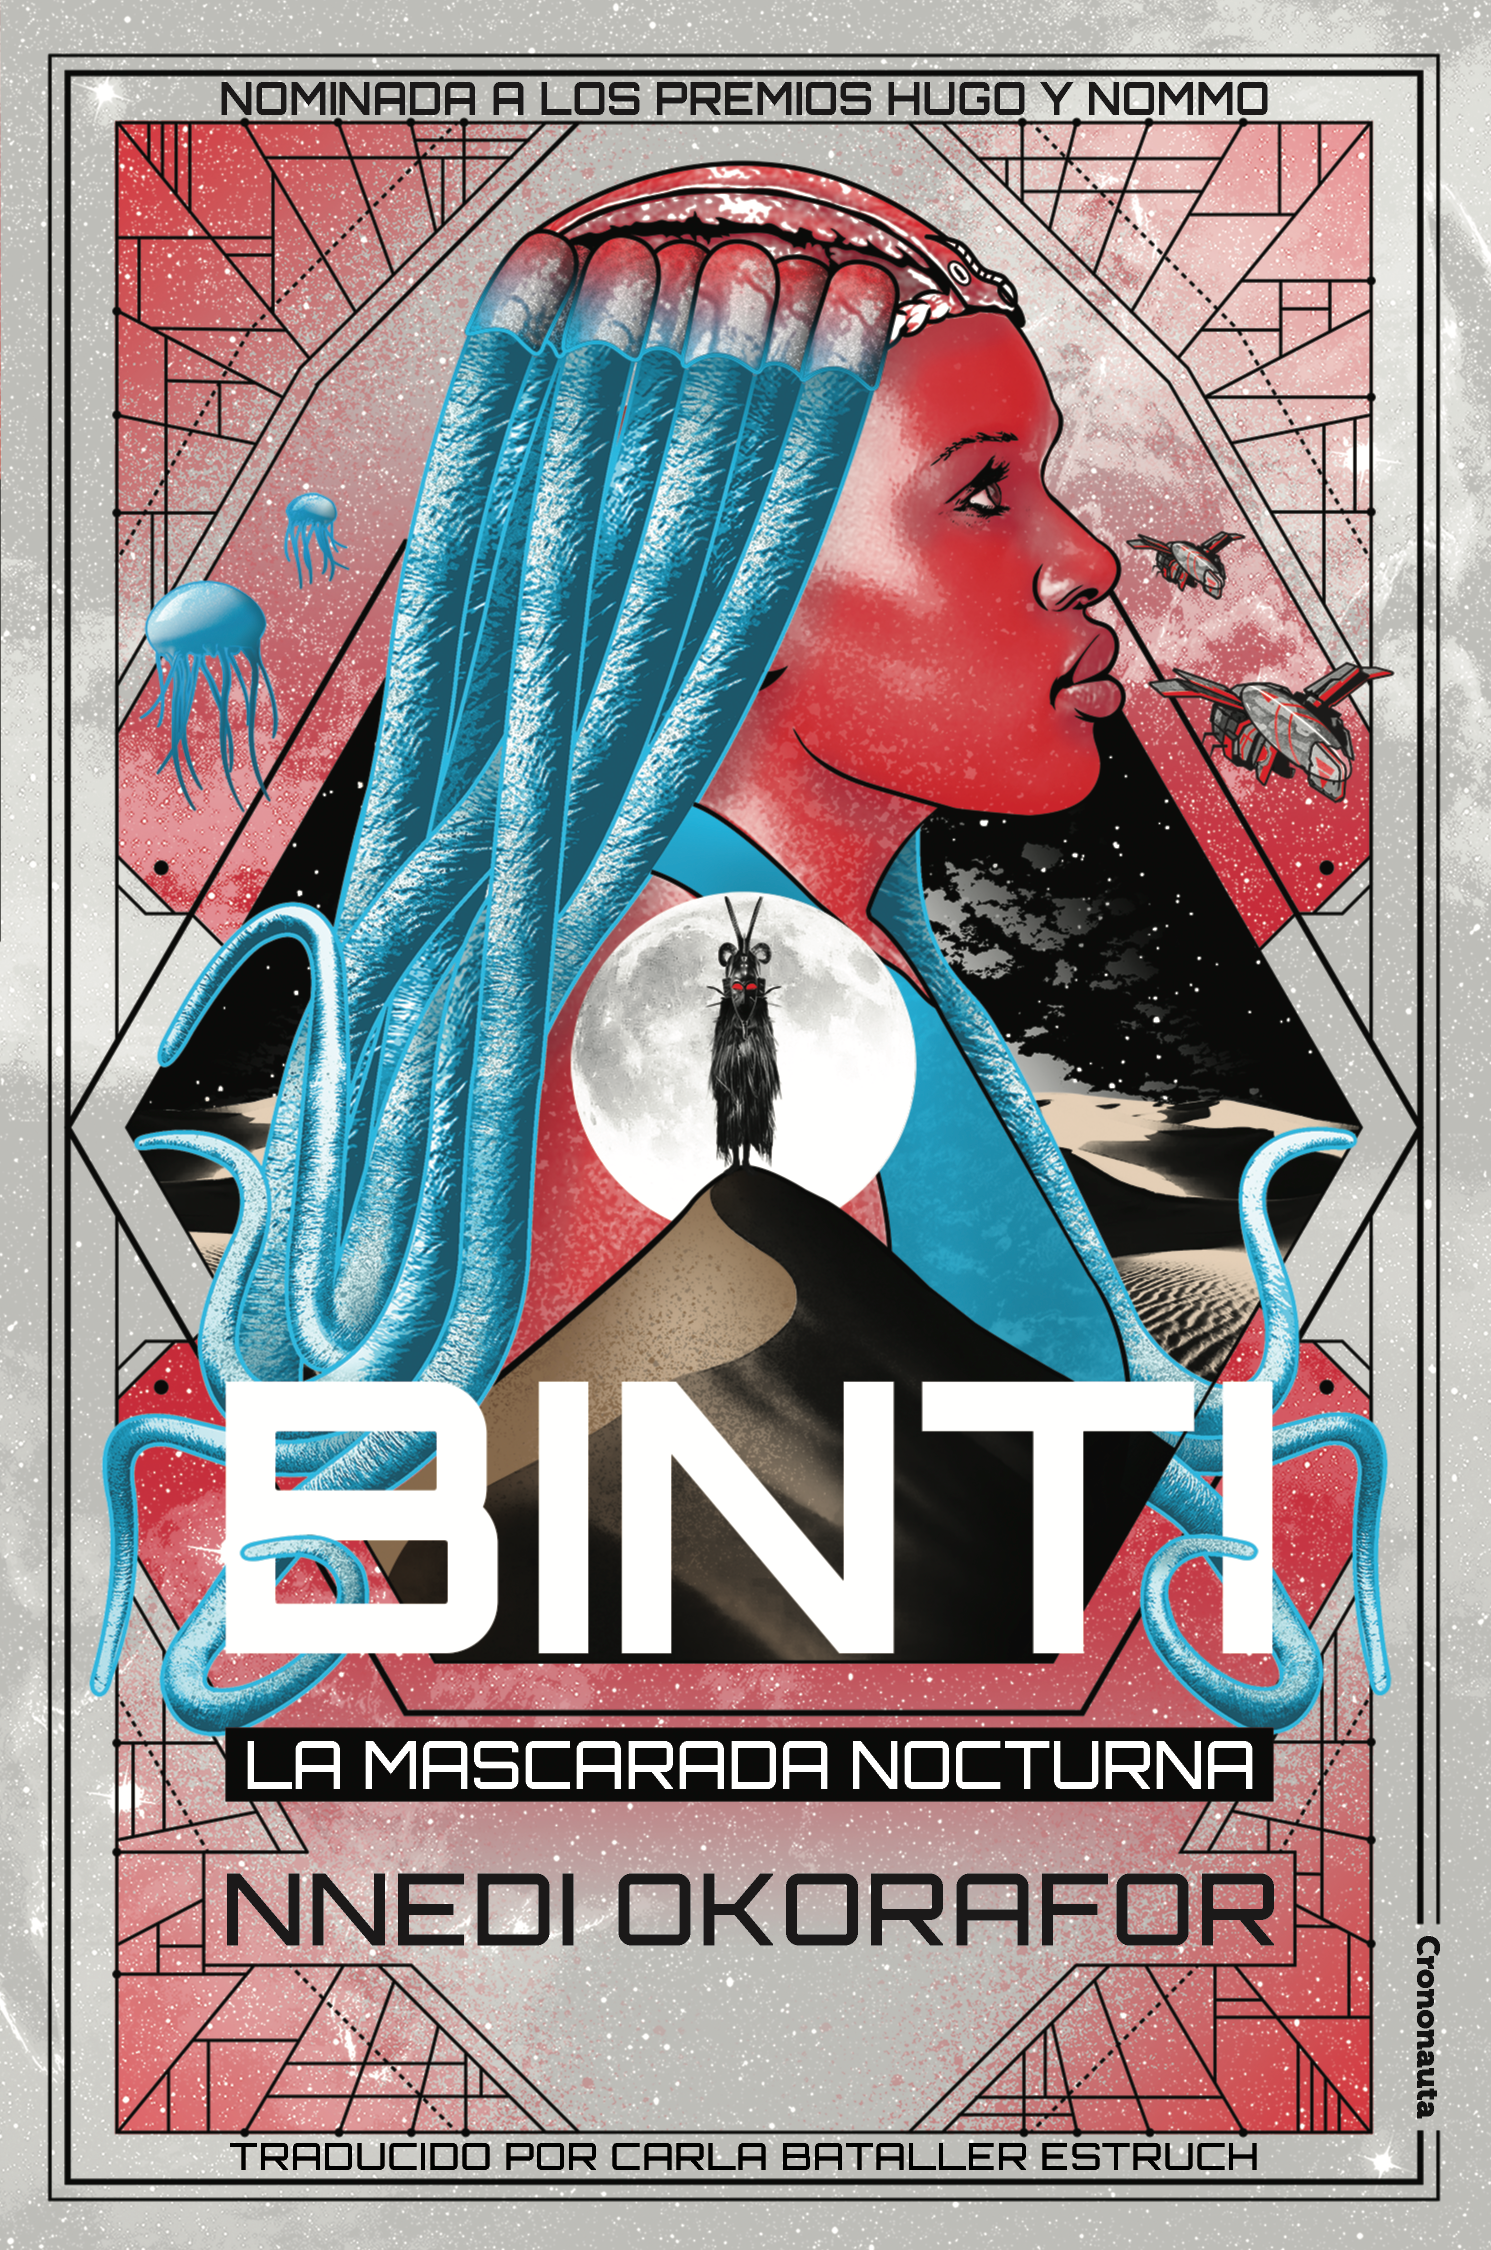 BINTI_La Mascarada Nocturna_EDITABLE_REV1_cover